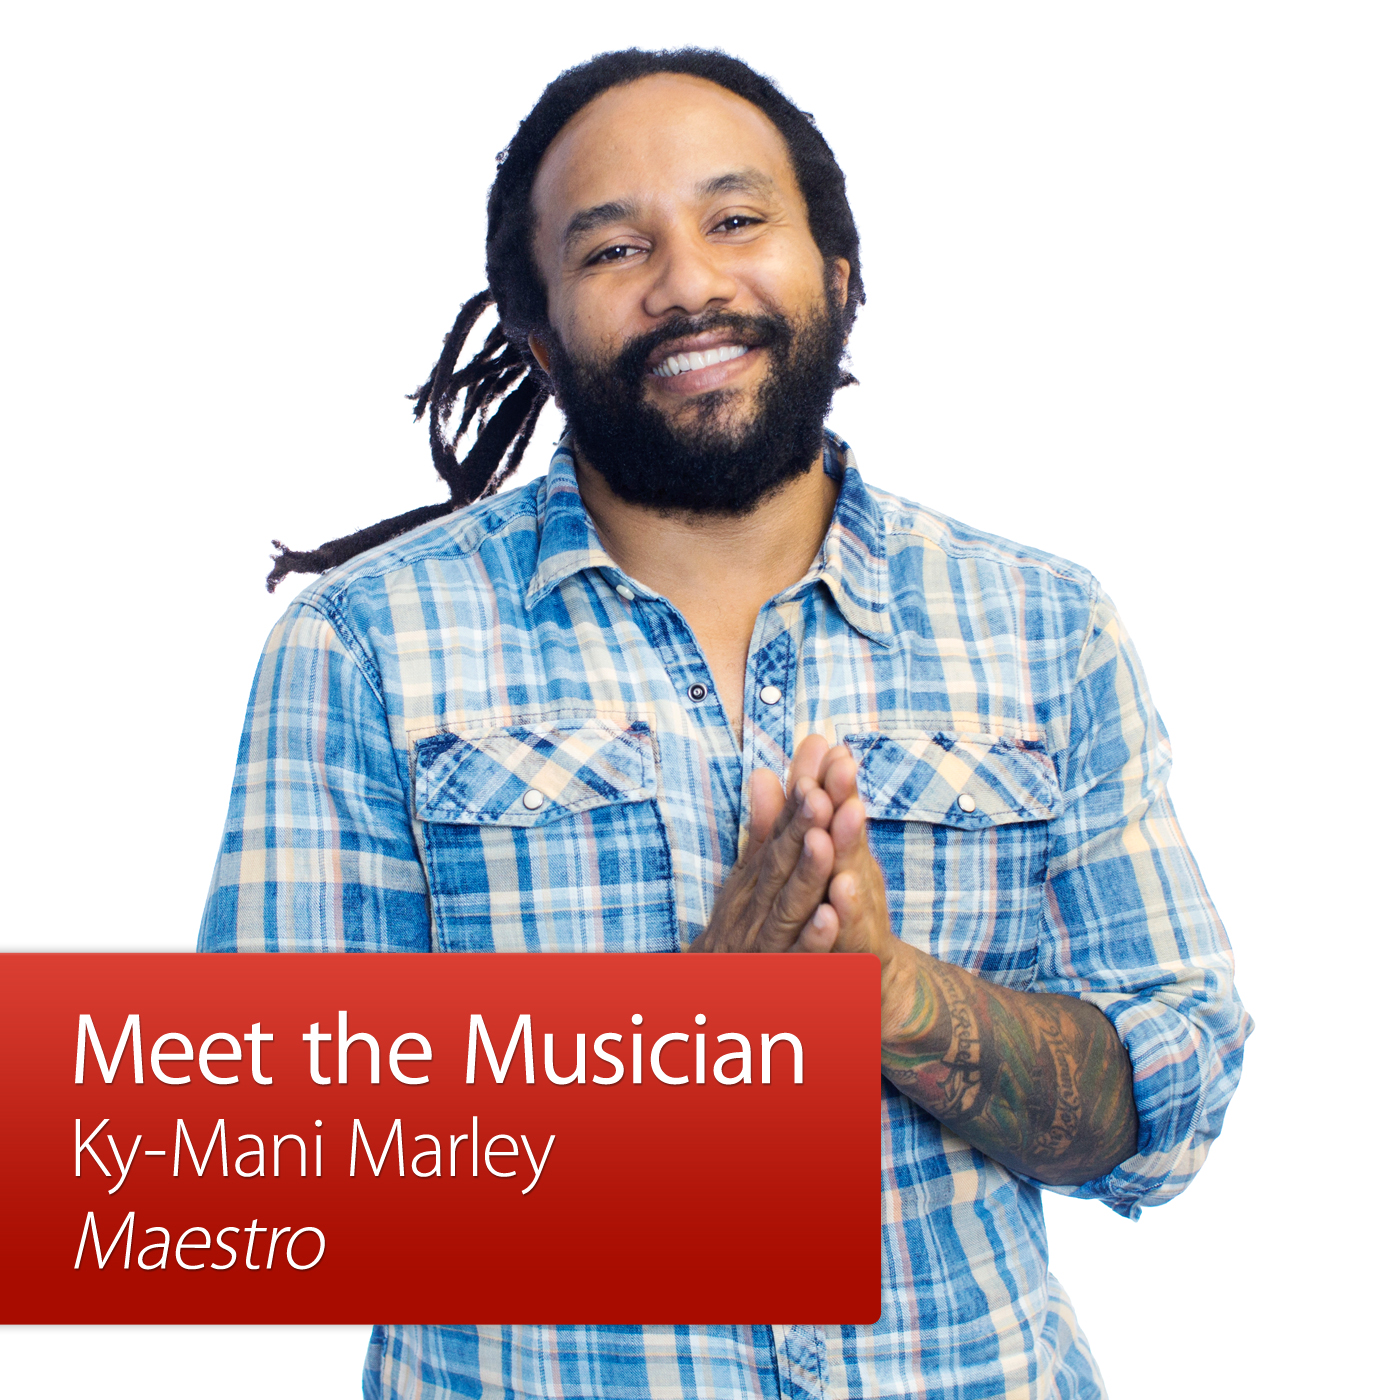 Ky-Mani Marley: Meet the Musician